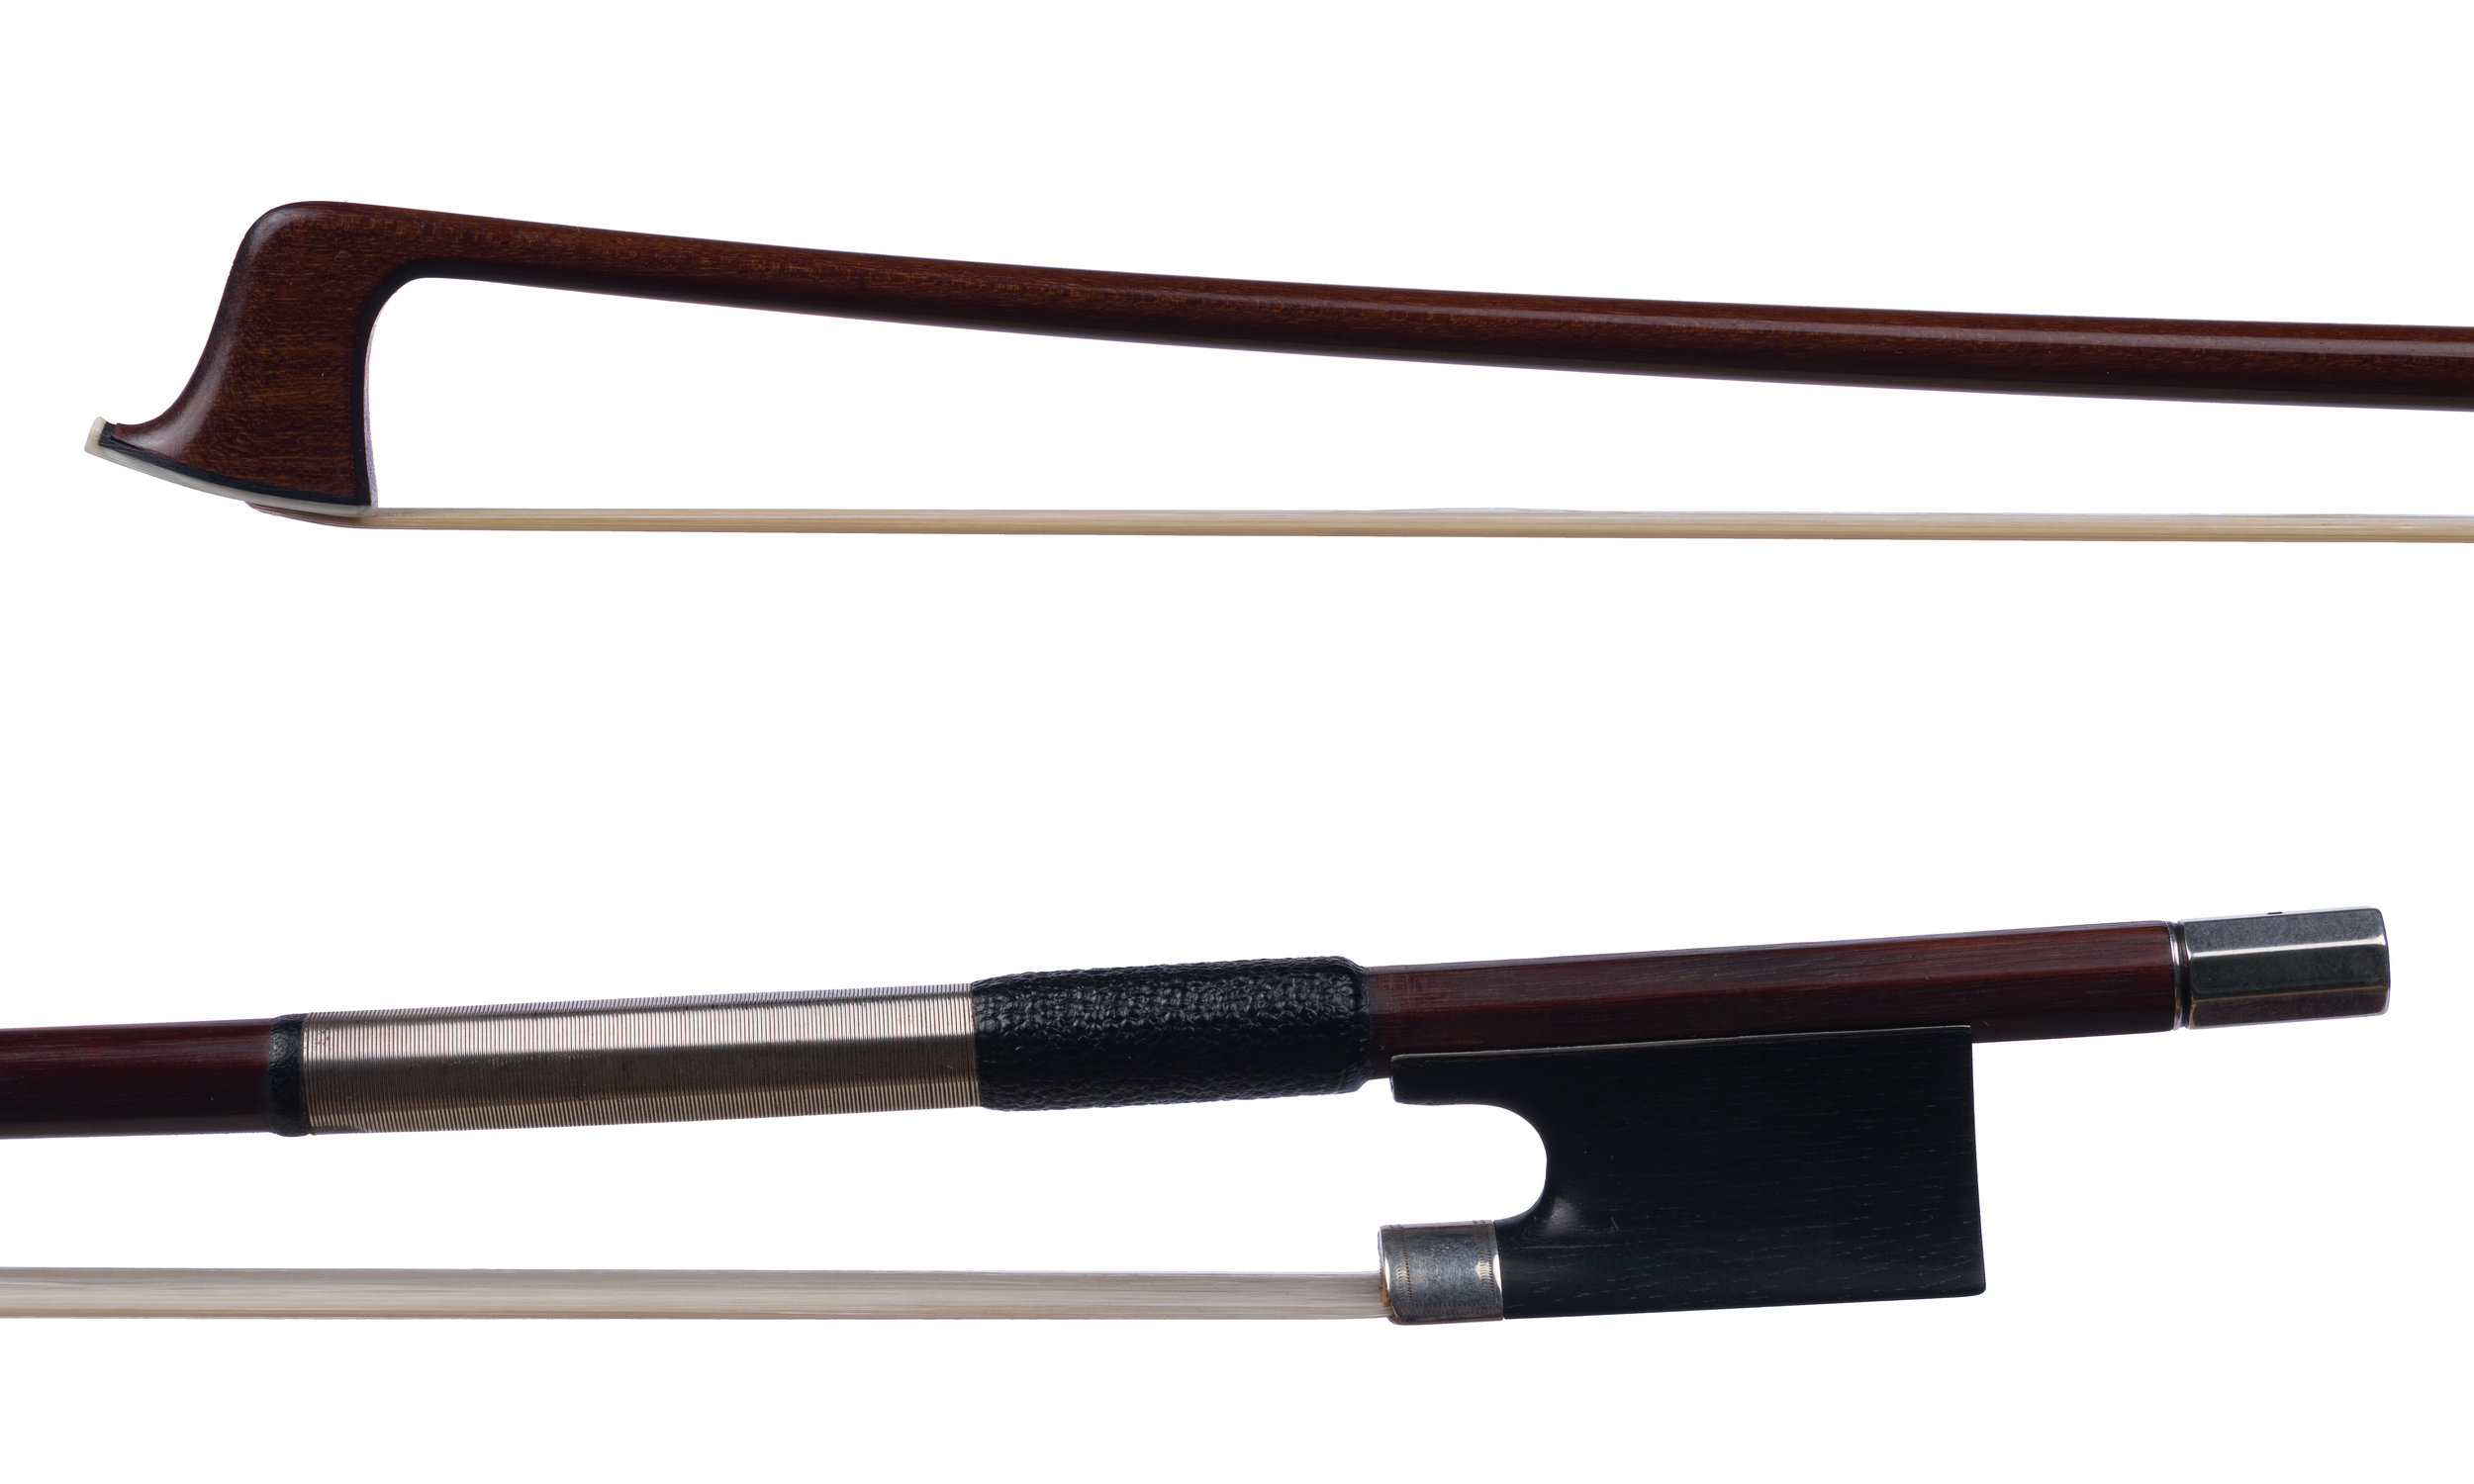 Unstamped German Violin Bow - Silver-mounted ebony frog